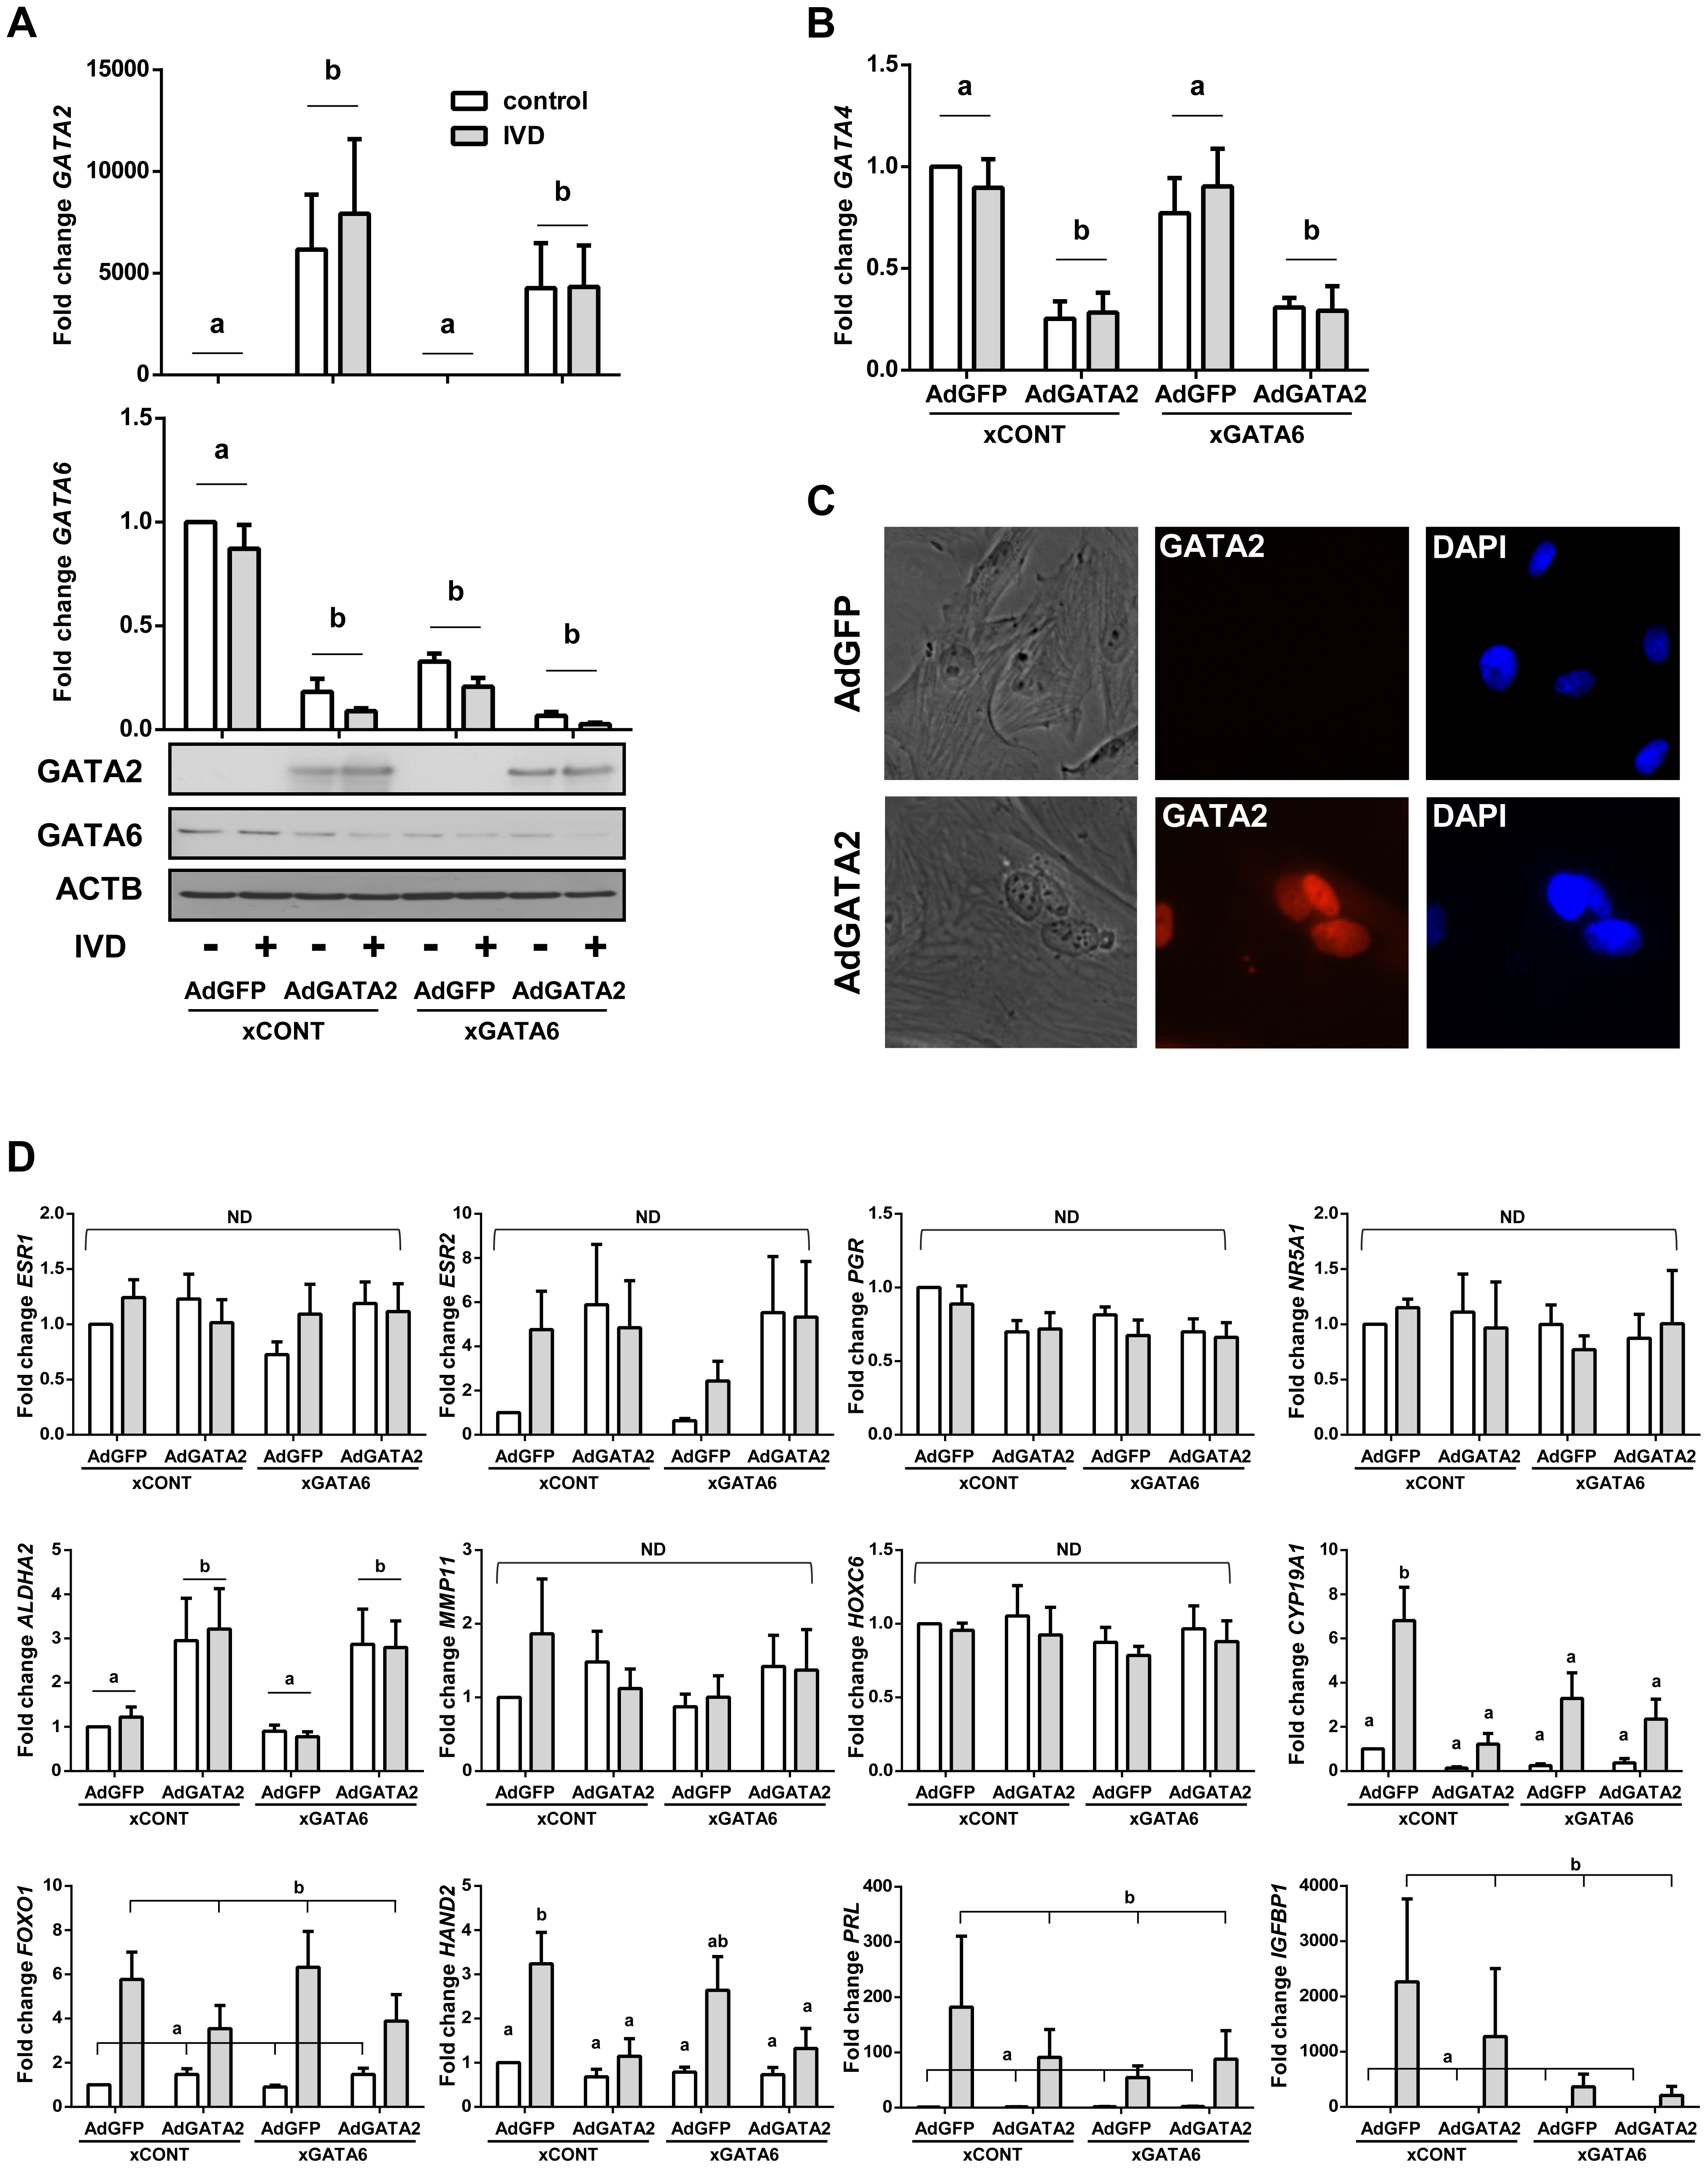 The effect of silencing <i>GATA6</i> and expressing GATA2 in OSIS.